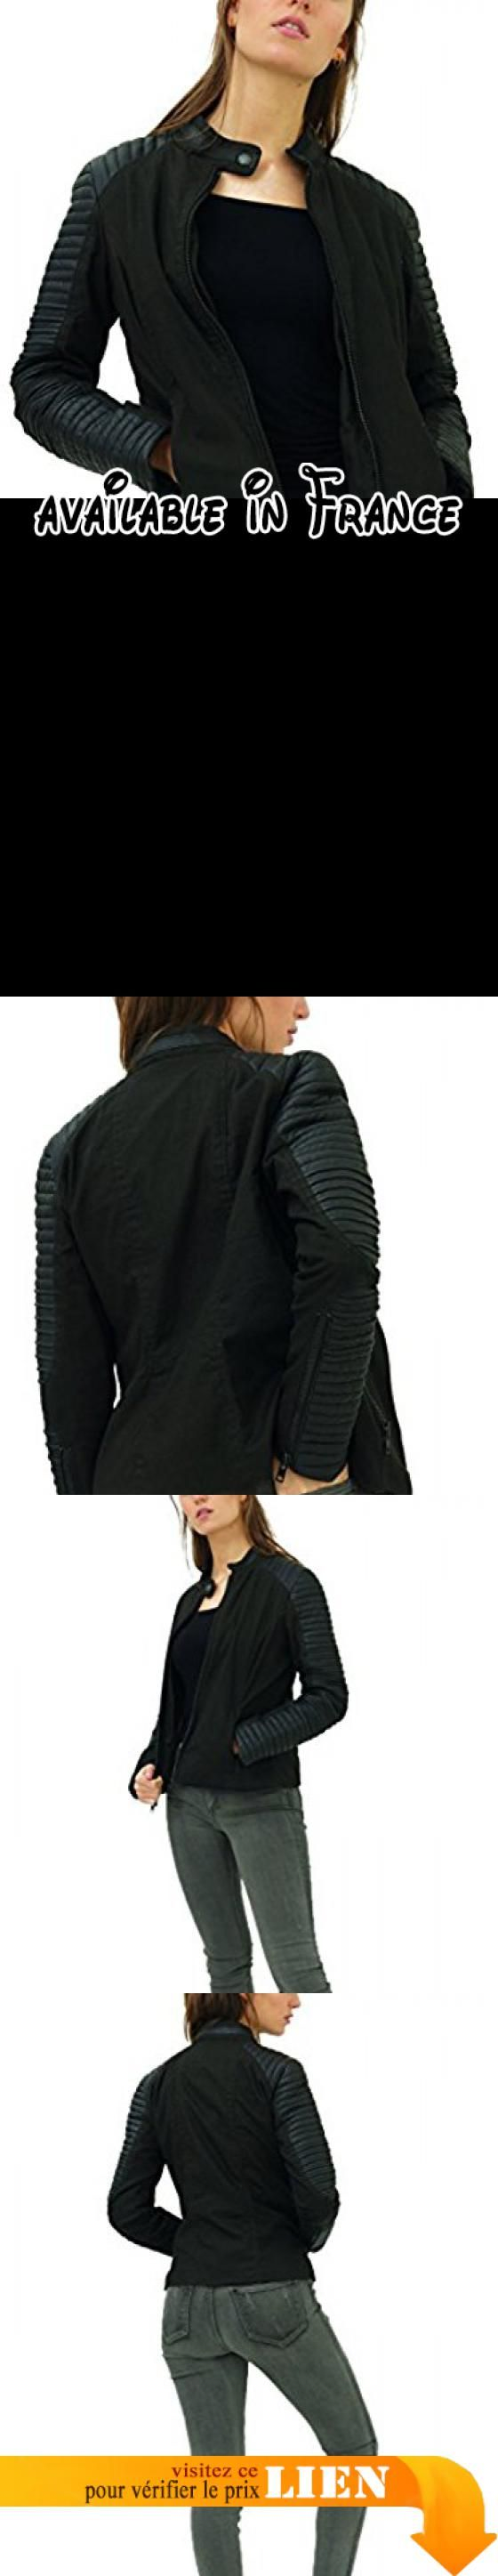 B0785NHHXM : trueprodigy Casual Femme veste moto uni  vetements swag marque vintage (sportif & slim fit classic) veste avec details en cuir mode fashion Couleur: noir 3582502-2999-L. #Apparel #OUTERWEAR